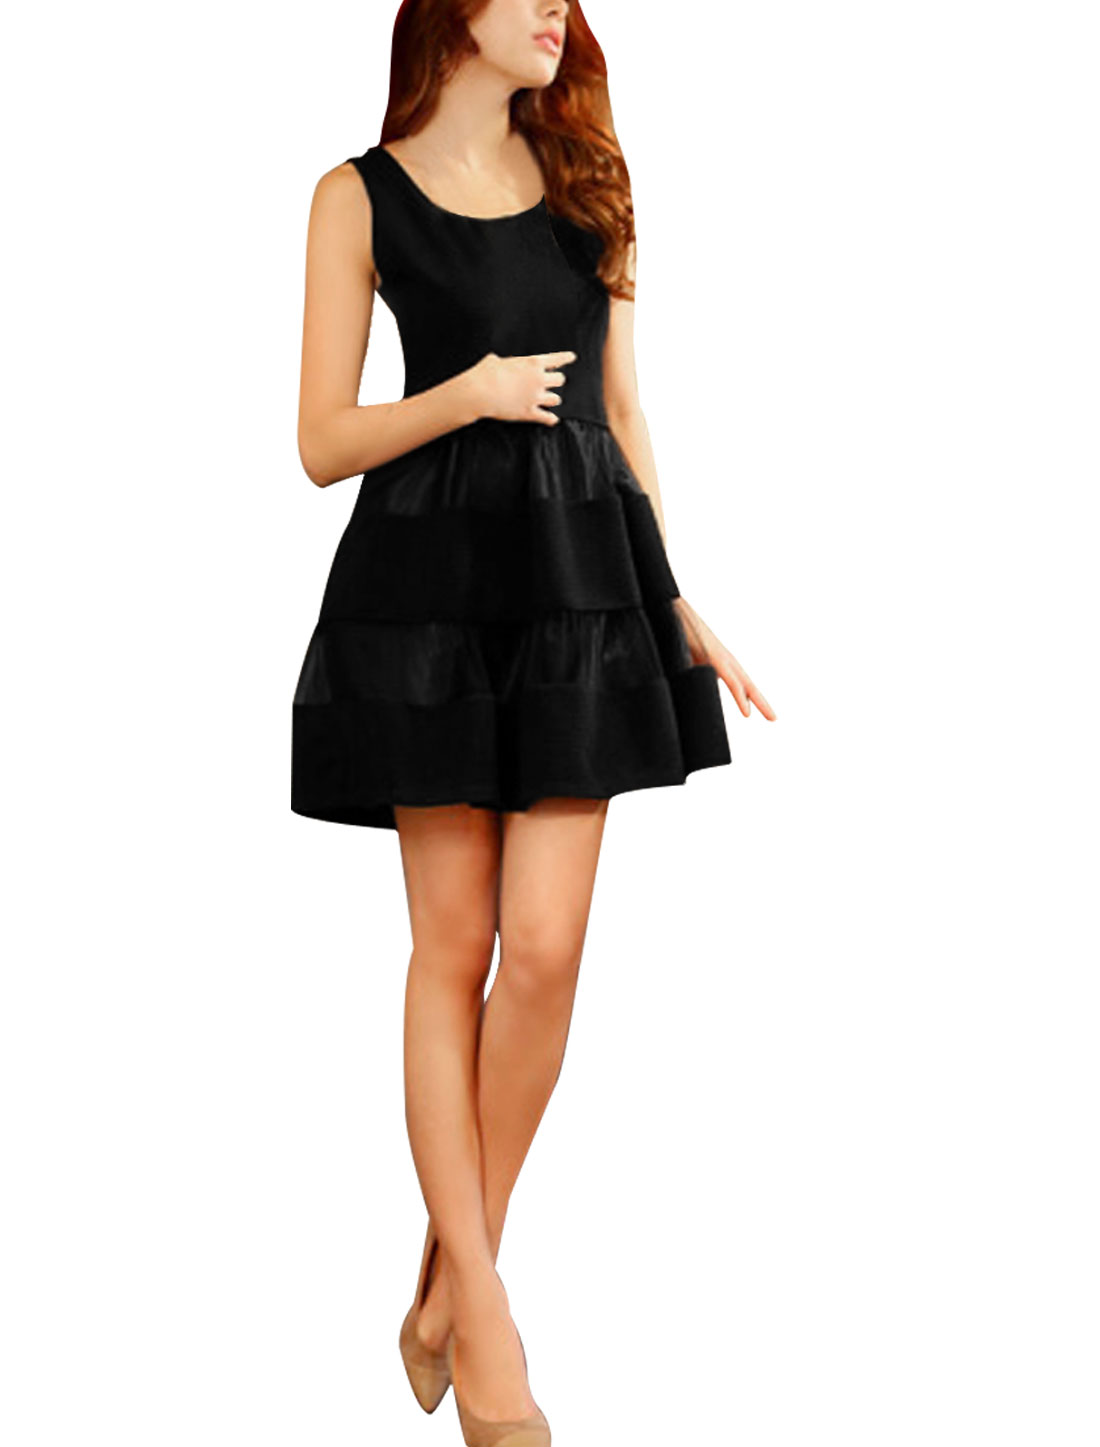 Ladies Black Sleeveless Ruched With Lining Casual Summer Sexy Dress XS